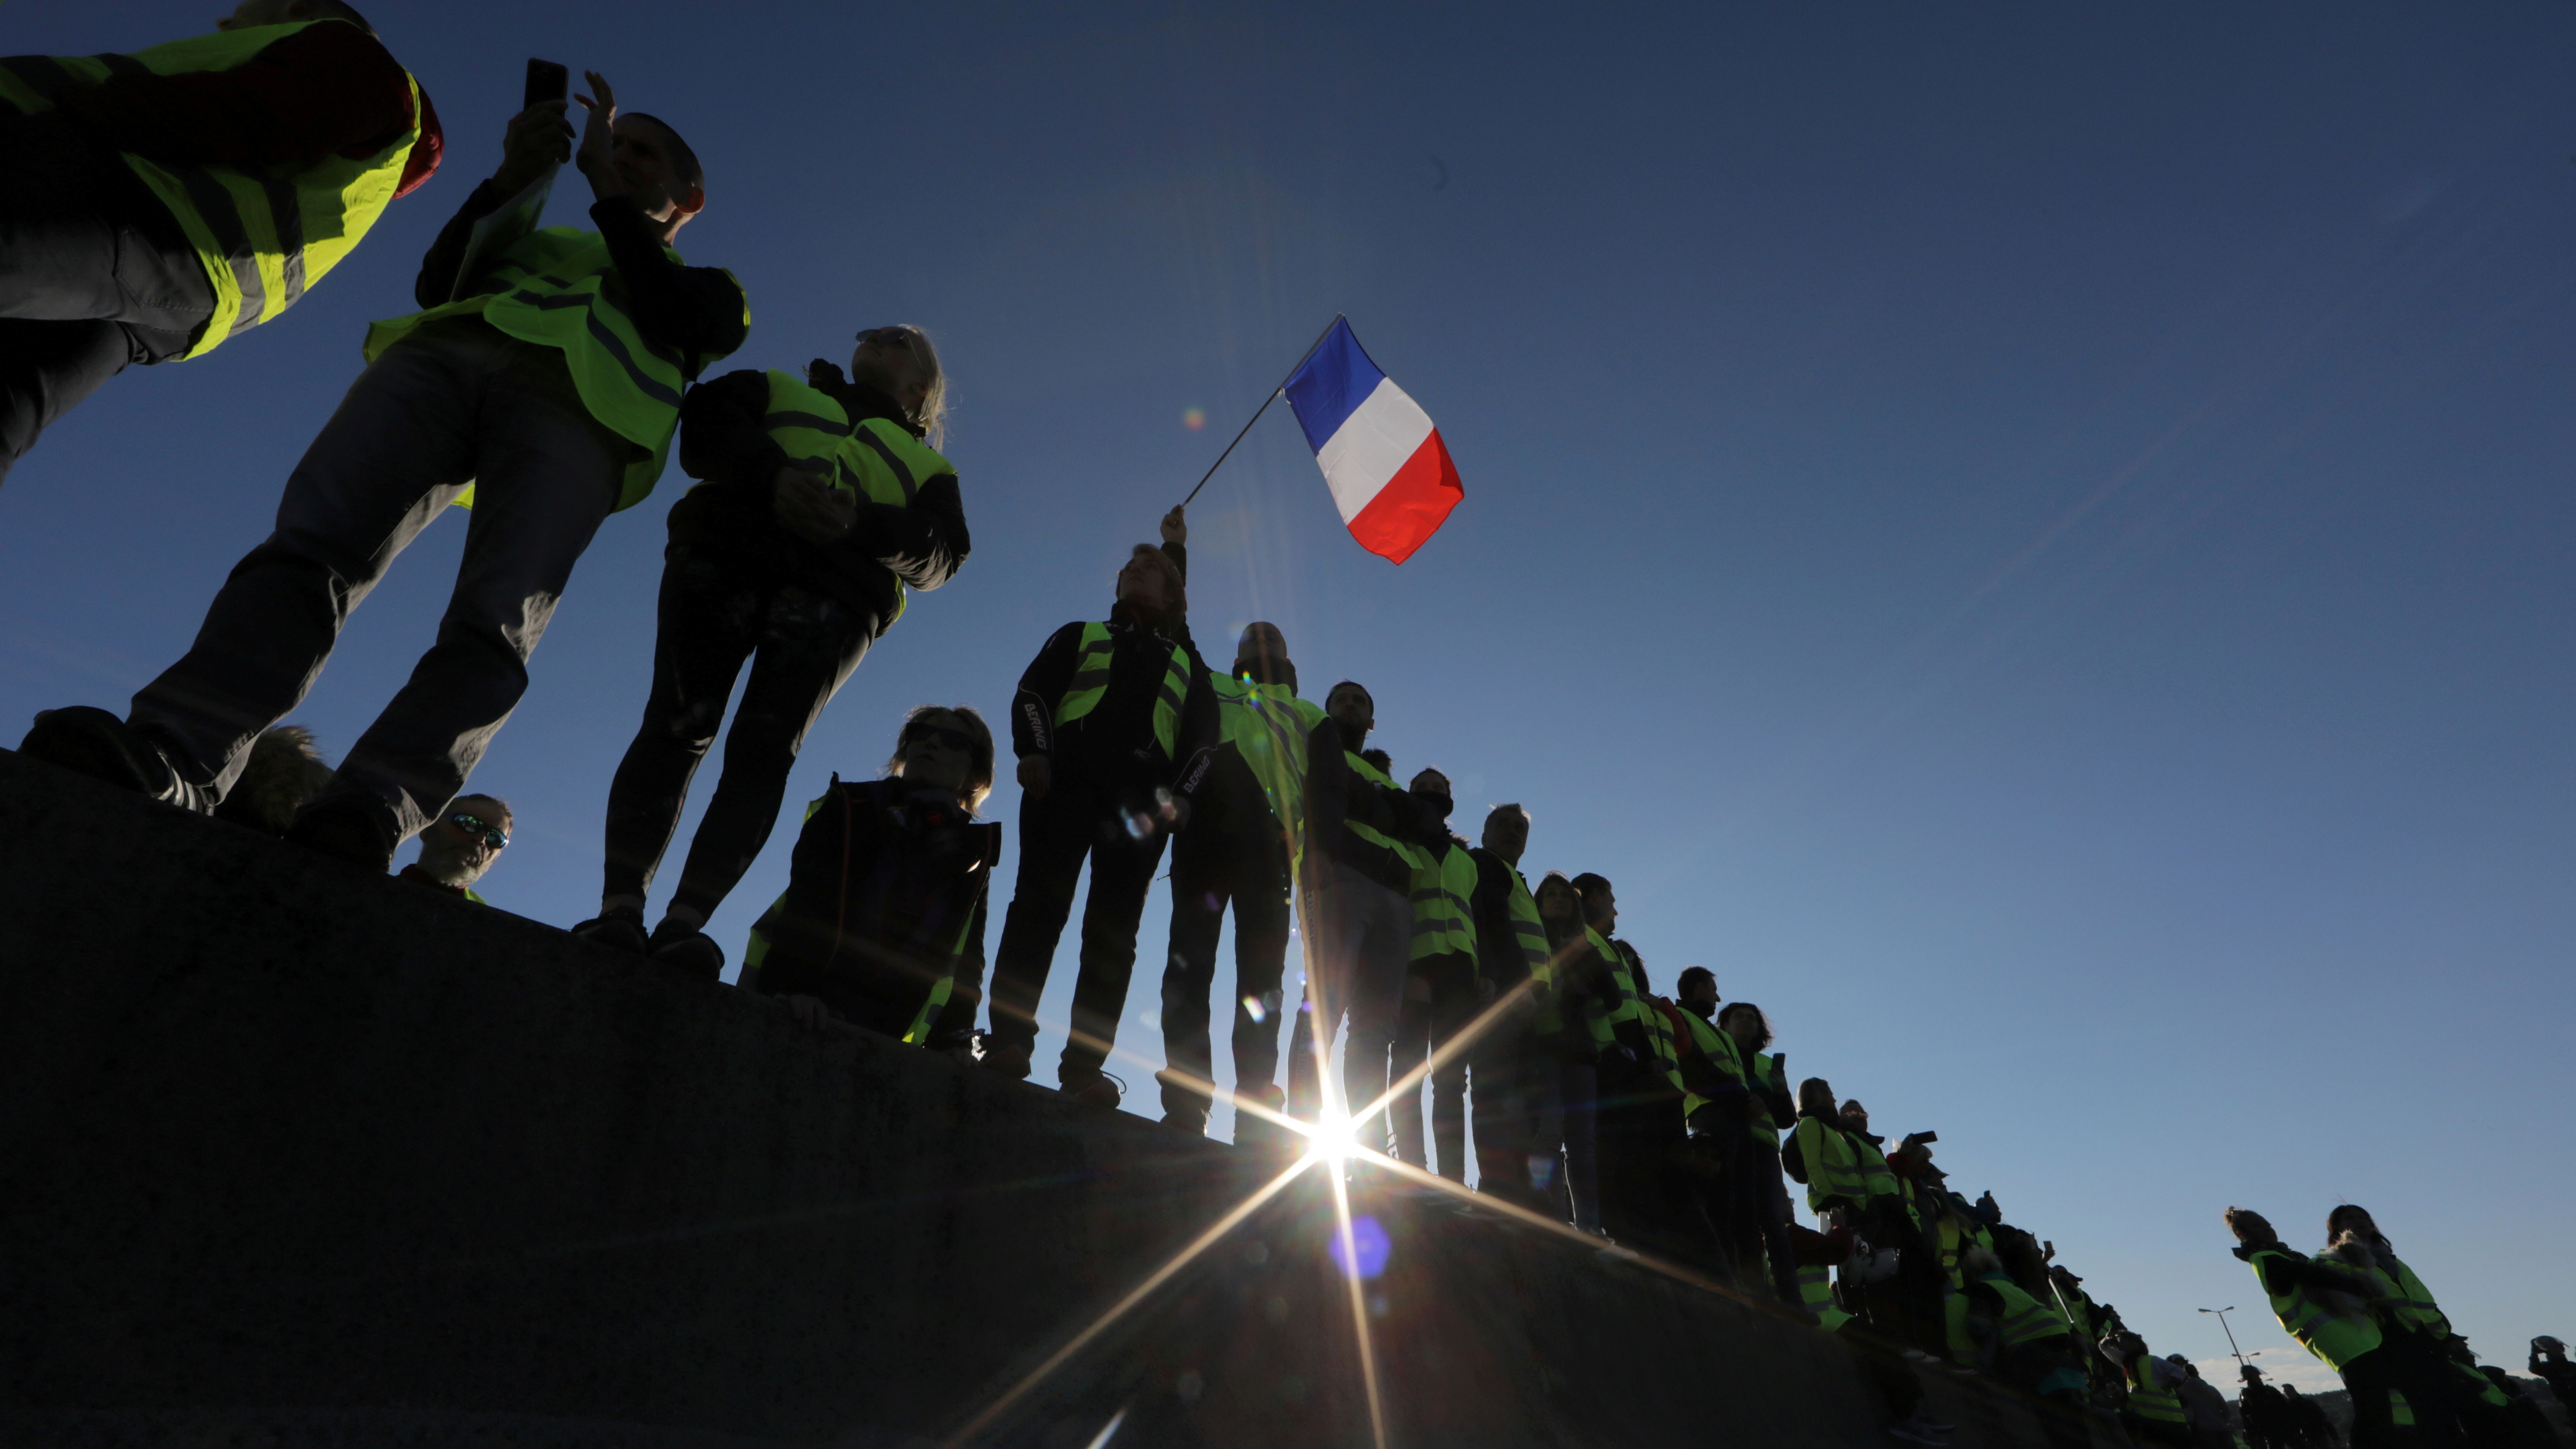 yellow vests protests in france show the price of green policies